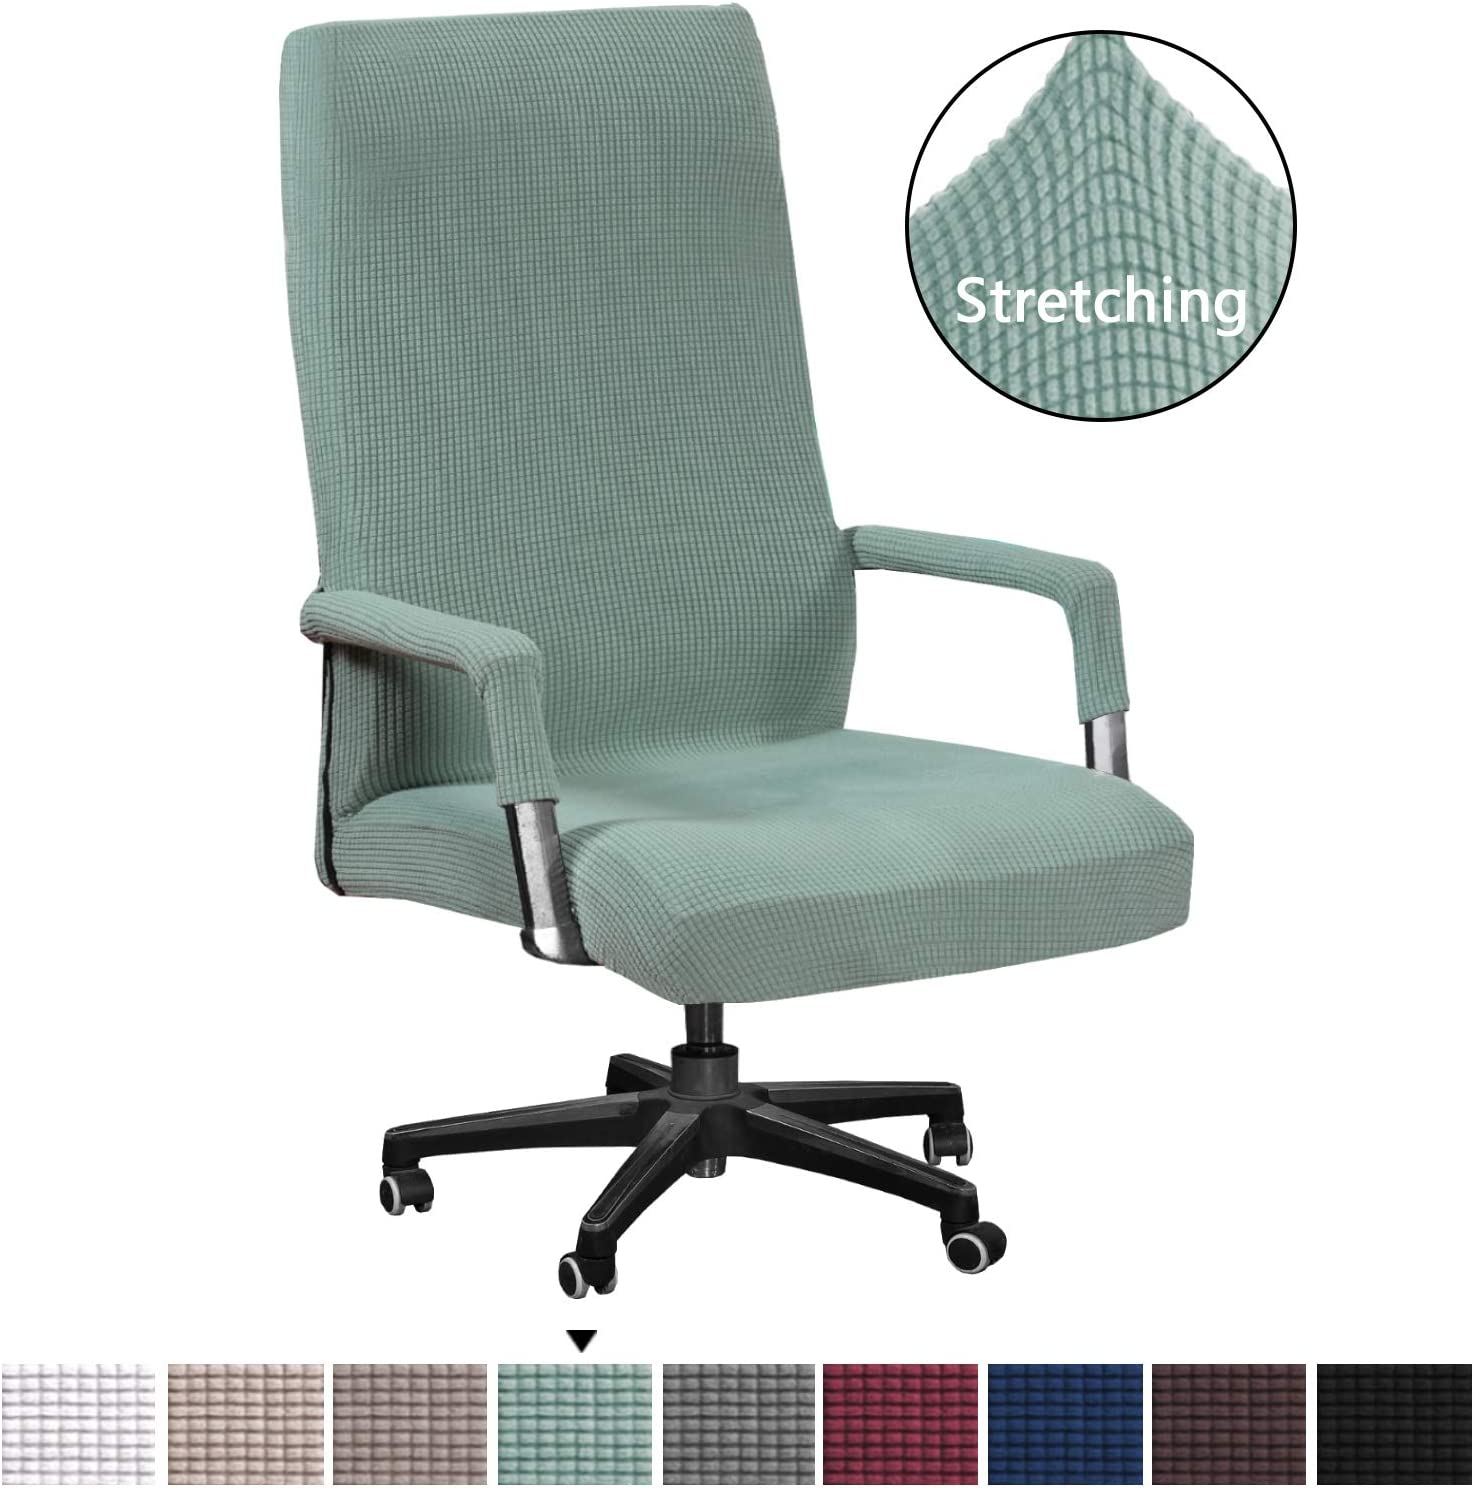 High Stretch Chair Cover Jacquard Lycra Slipcover/Form Fit Slip Resistant Furniture Protector Office Computer Chair Cover Rotating Chair Swivel Chair Cover with Armrest Covers, Oversized, Sage